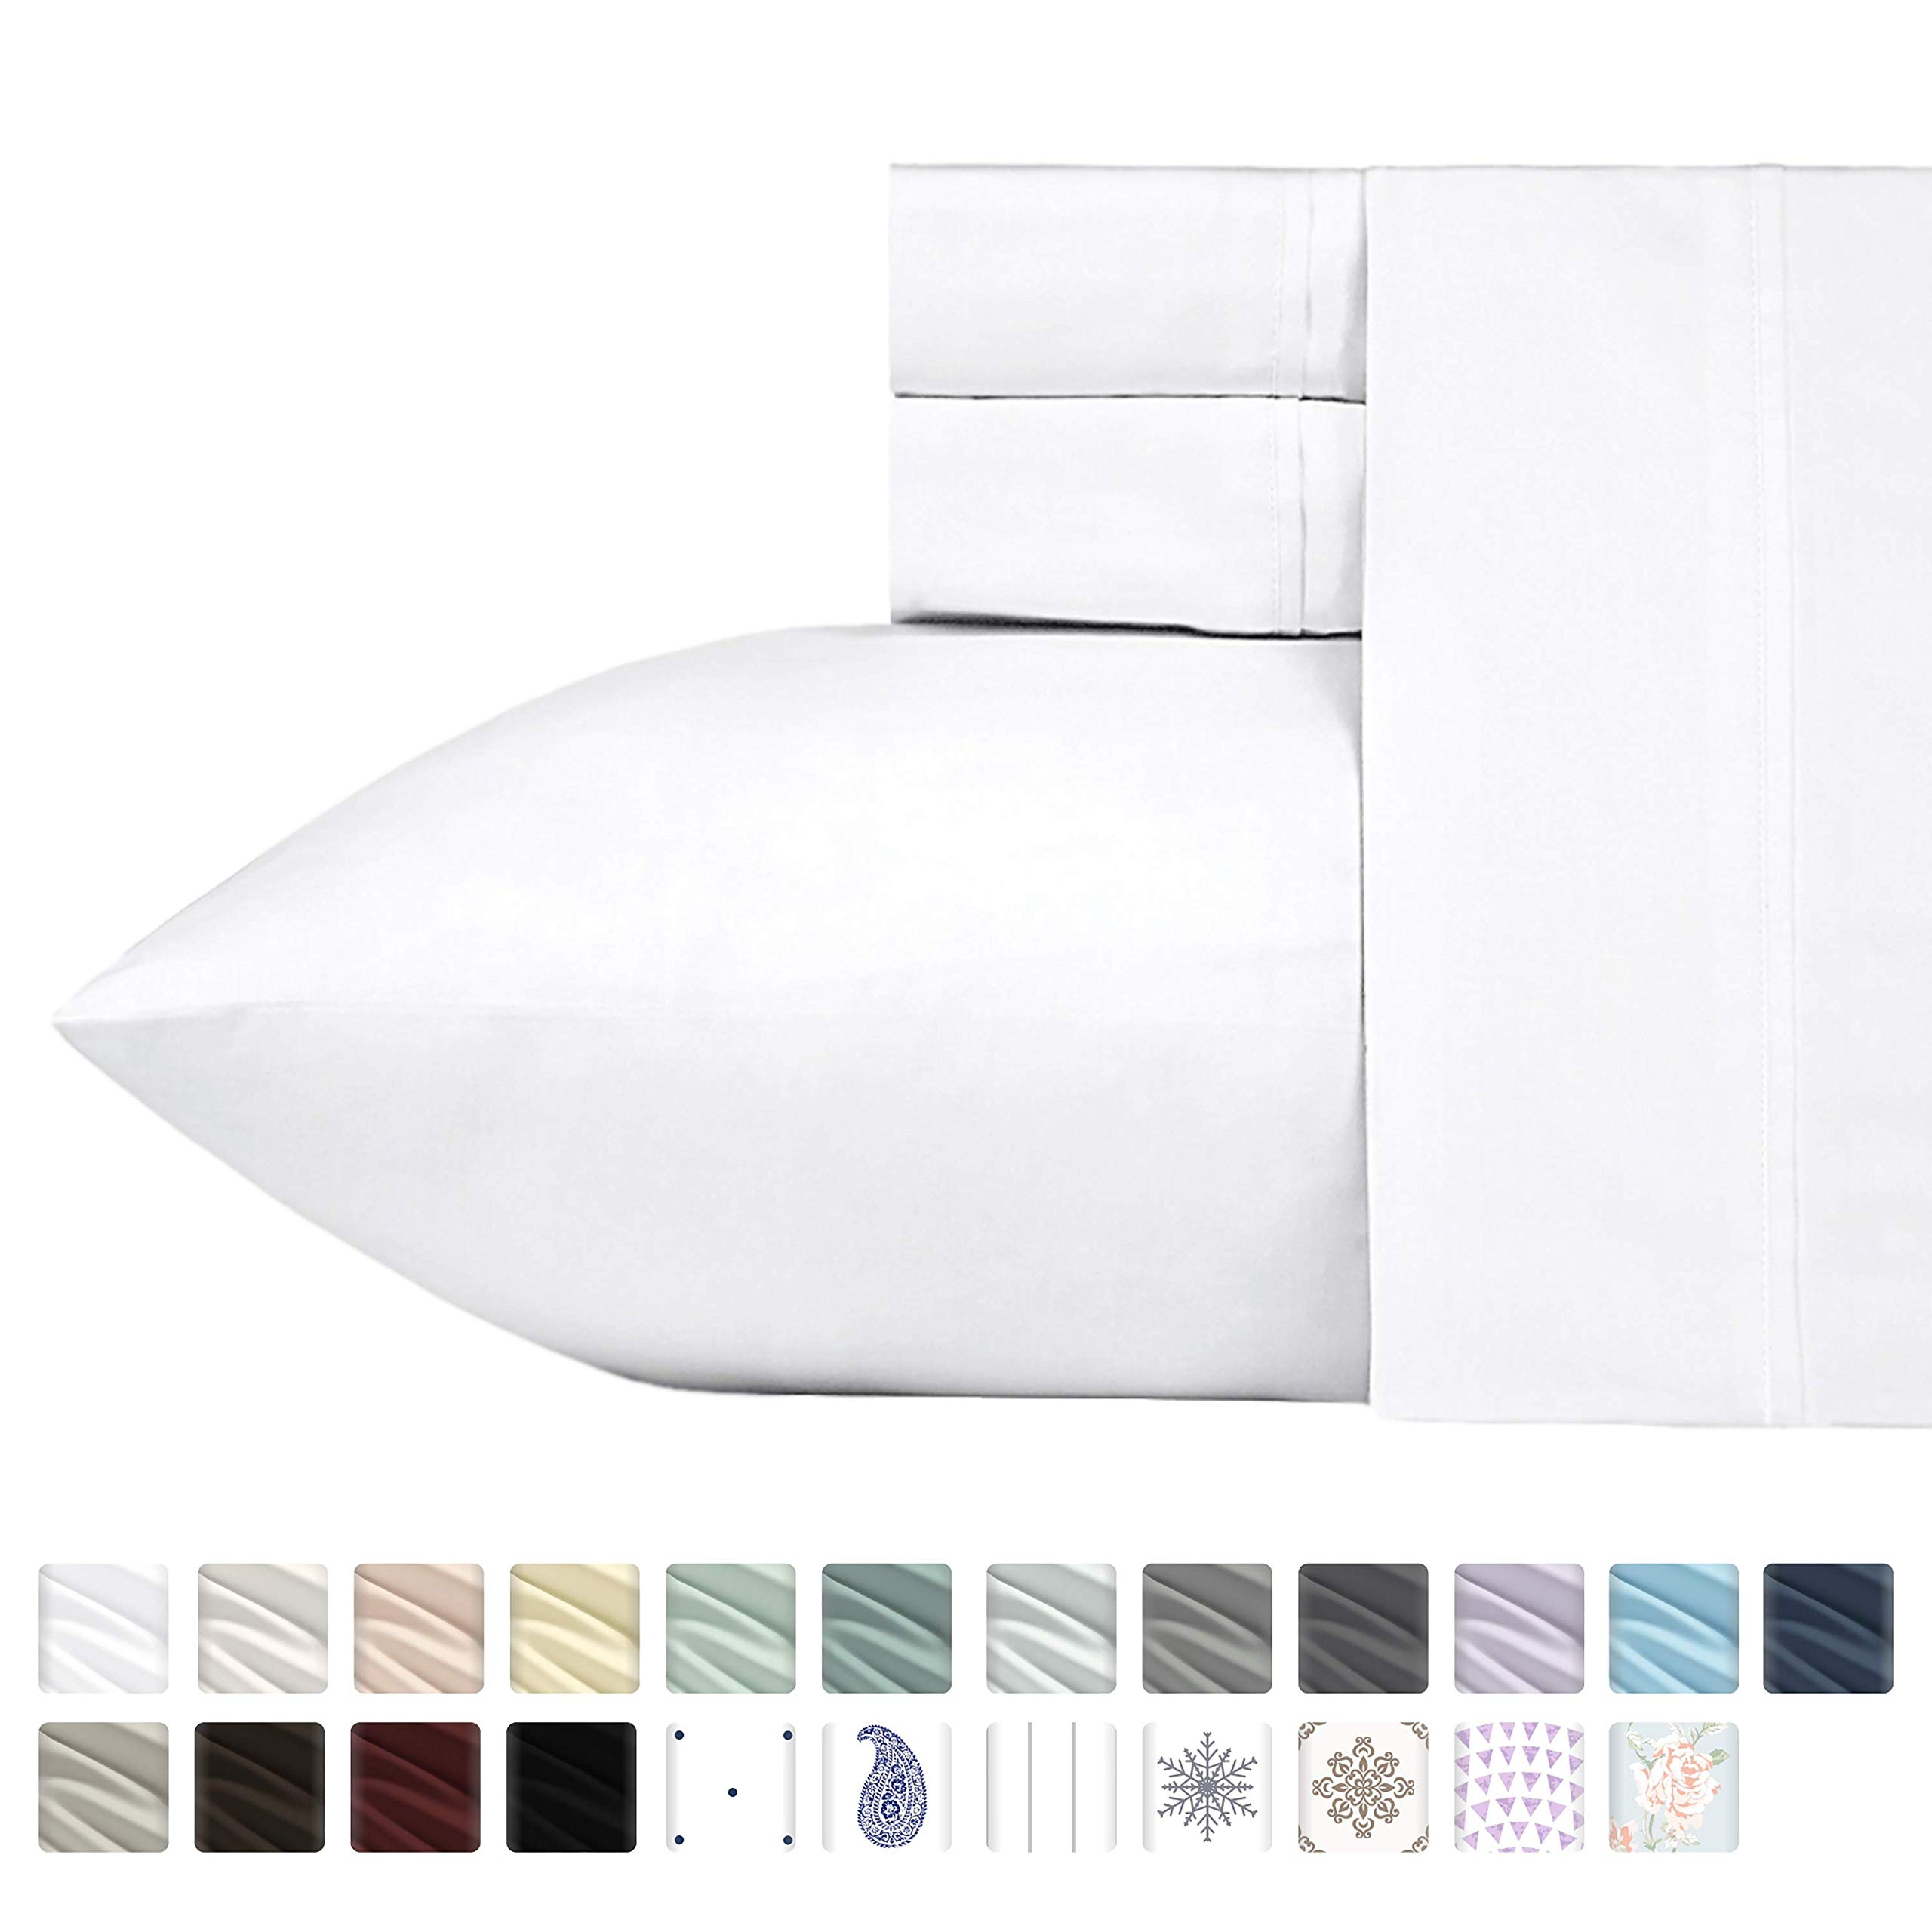 400-Thread-Count 100% Cotton Sheet Pure White Queen-Sheets Set, 4-Piece Long-staple Combed Cotton Best-Bedding Sheets For Bed, Breathable, Soft & Silky Sateen Weave Fits Mattress Upto 18'' Deep Pocket by California Design Den